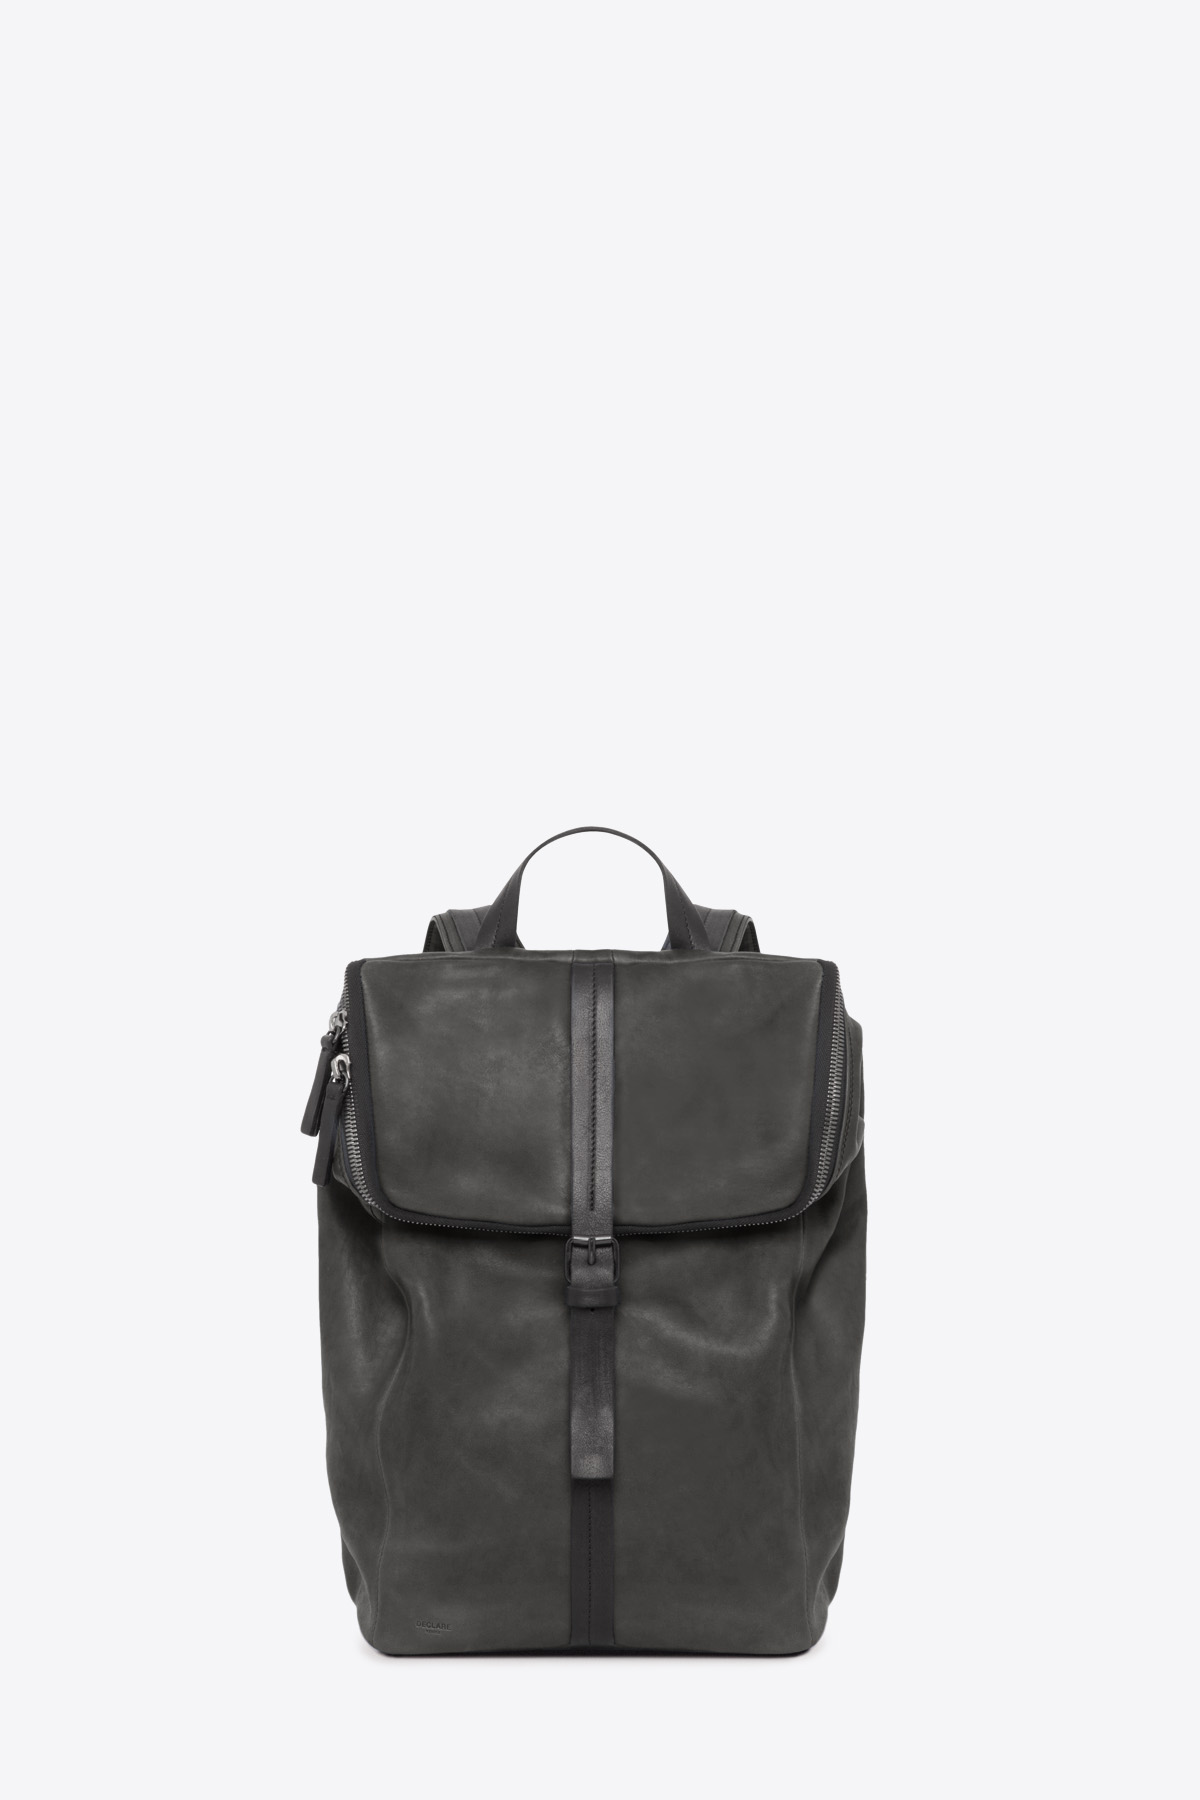 dclr011-backpack-a2-shadowgreen-front